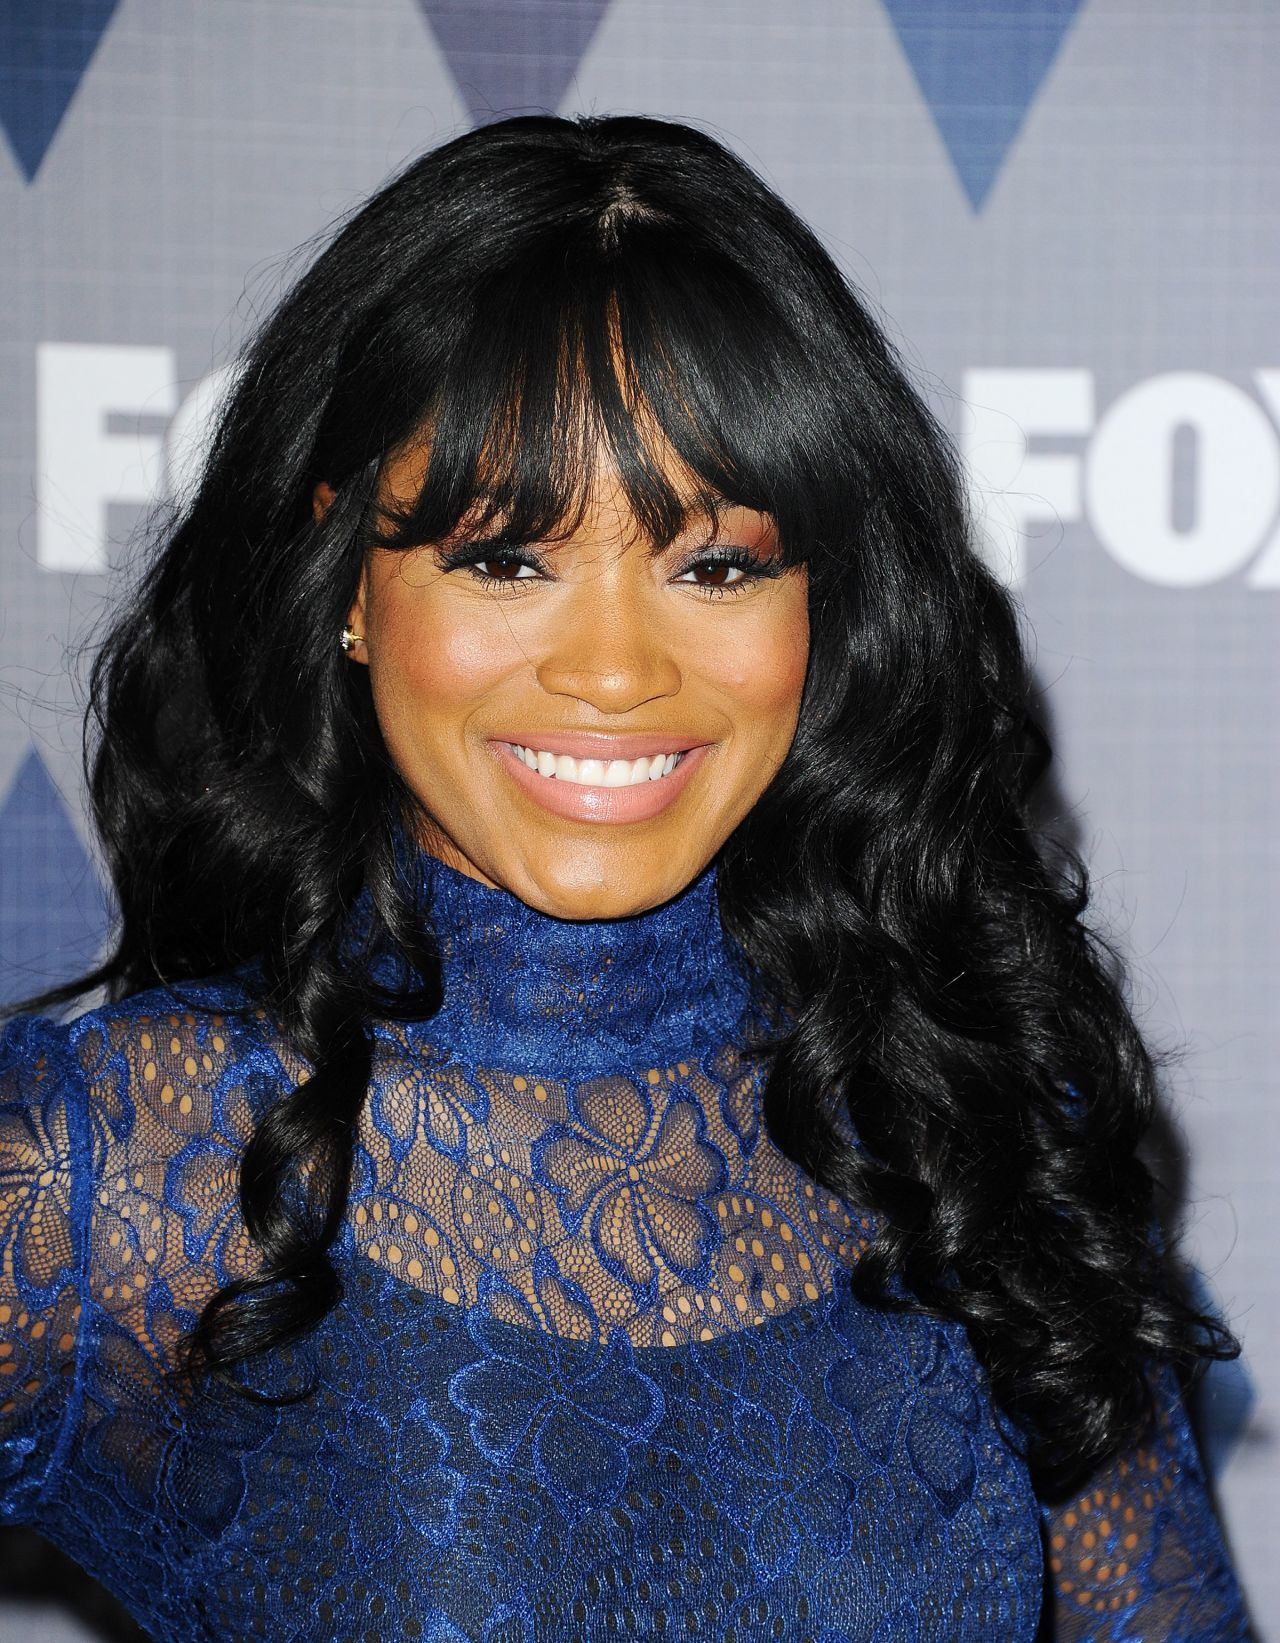 keke-palmer-fox-tca-winter-2016-all-star-party-in-pasadena-ca-5-1